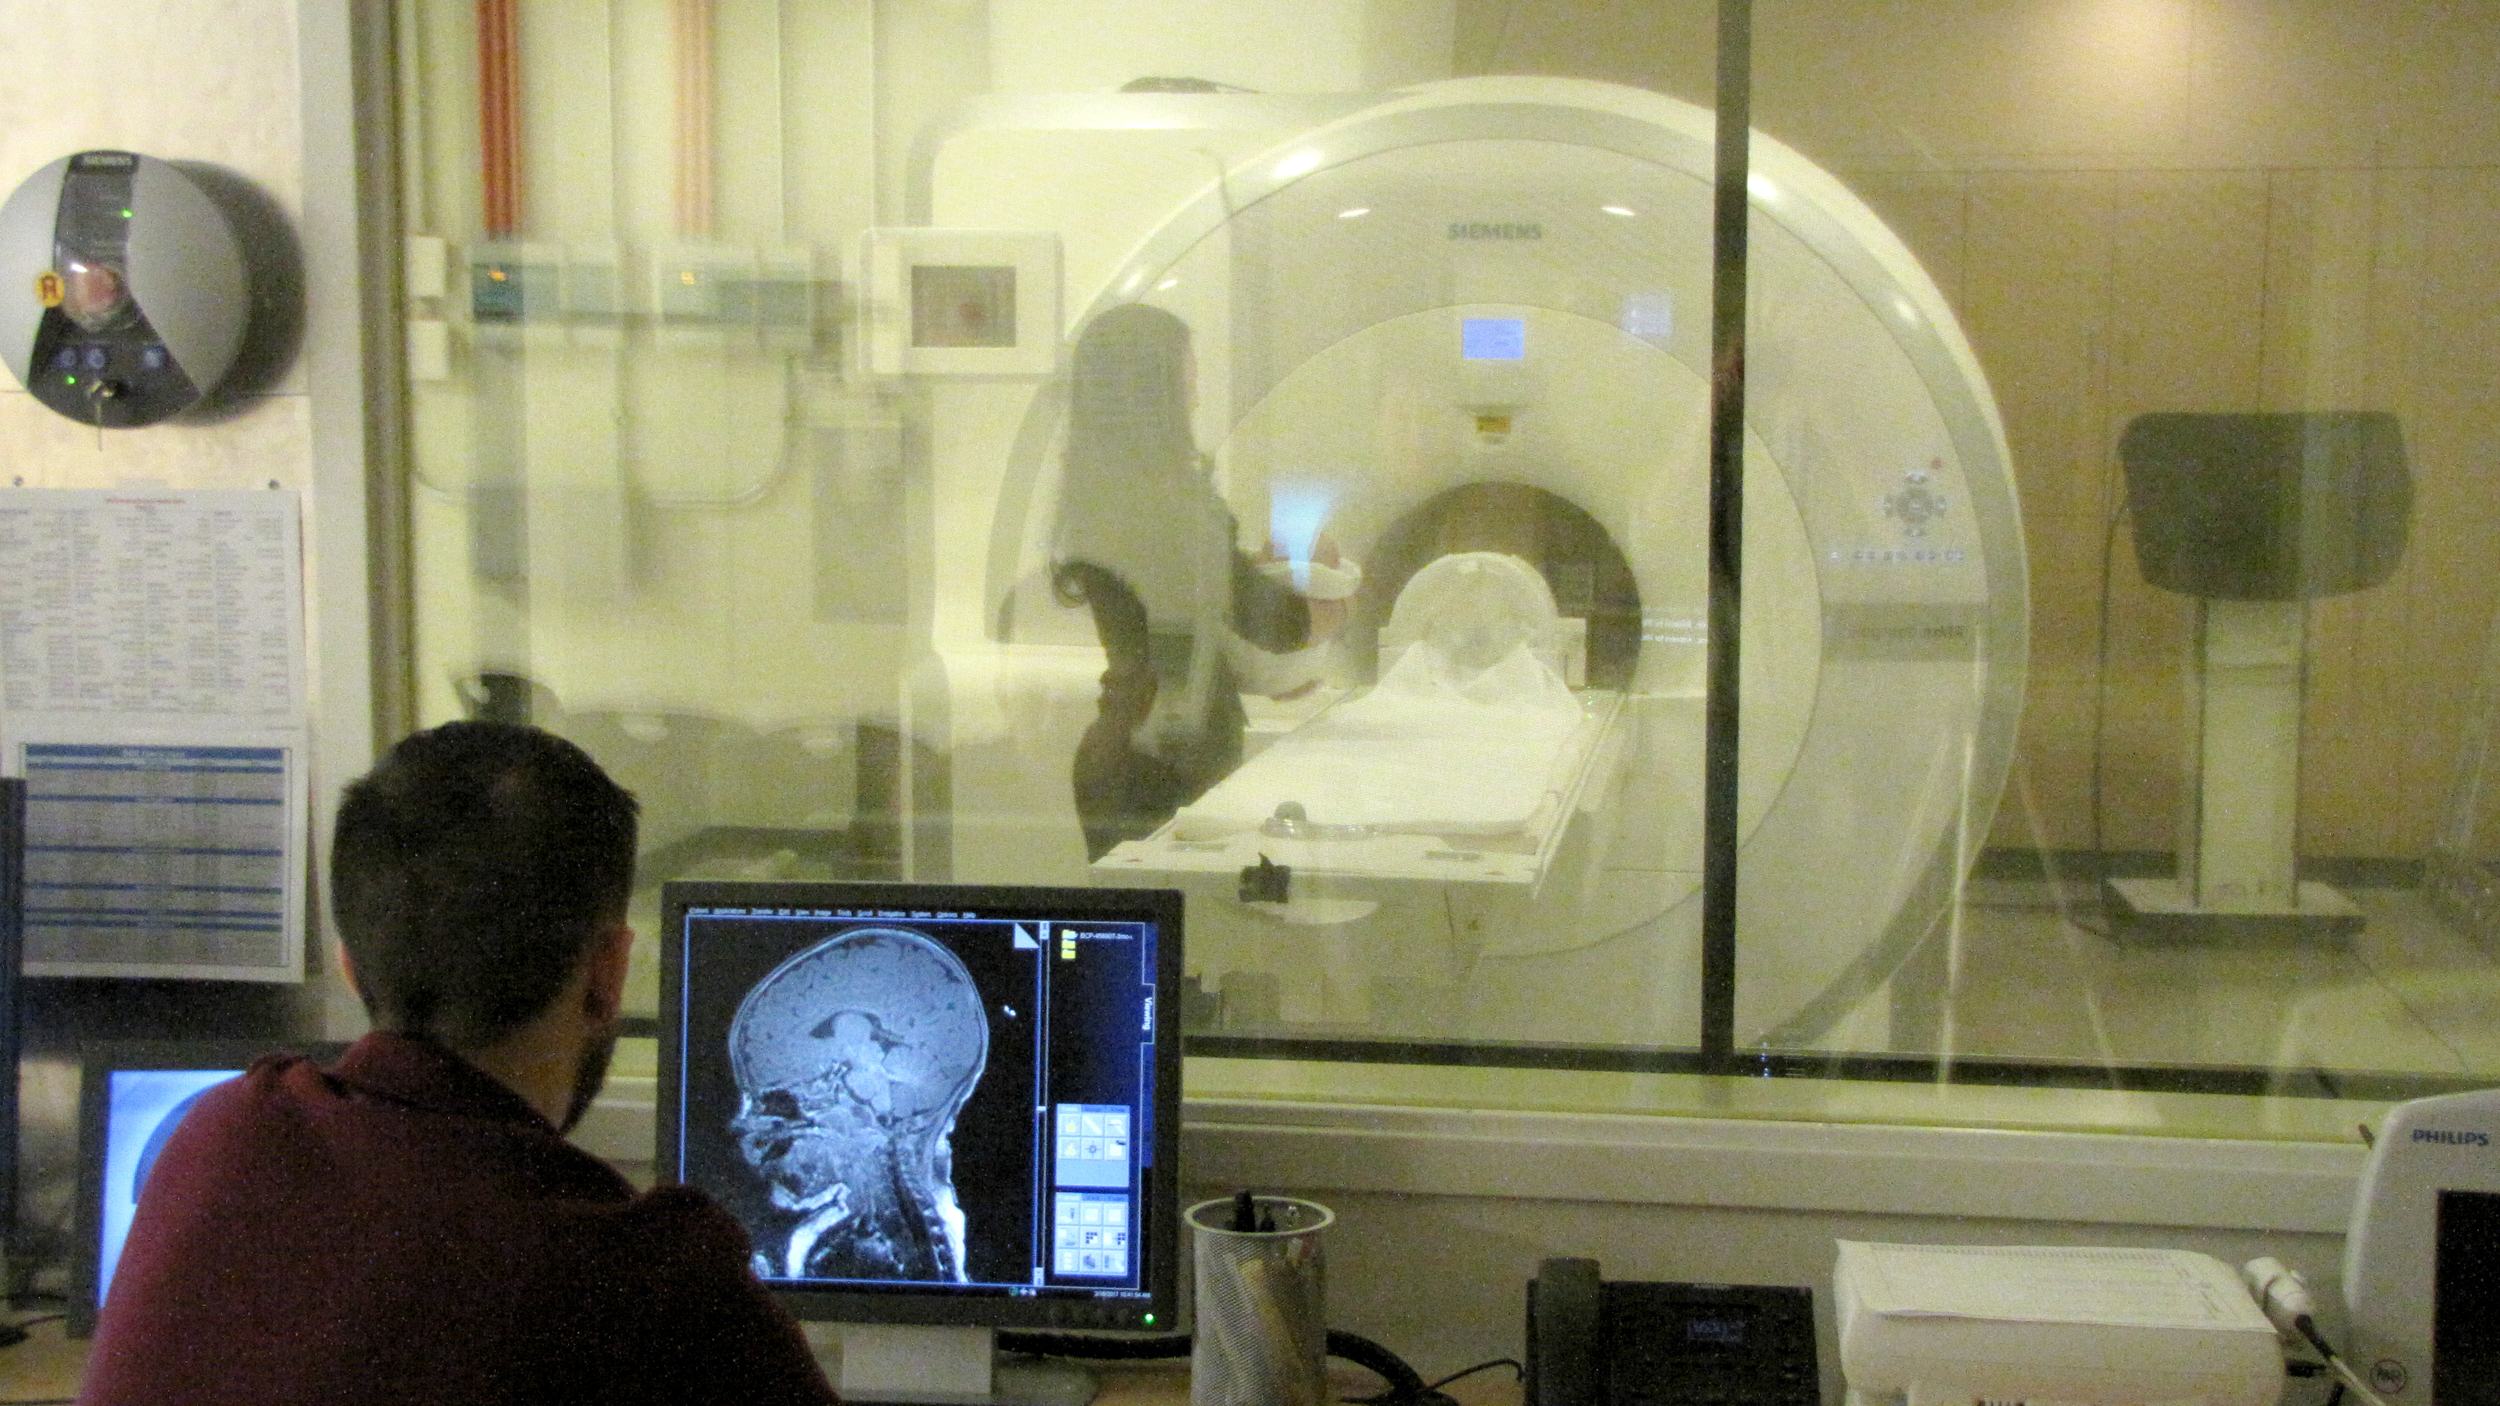 Mris Predict Which High Risk Babies >> Brain Scans May Help Predict Autism In High Risk Infants